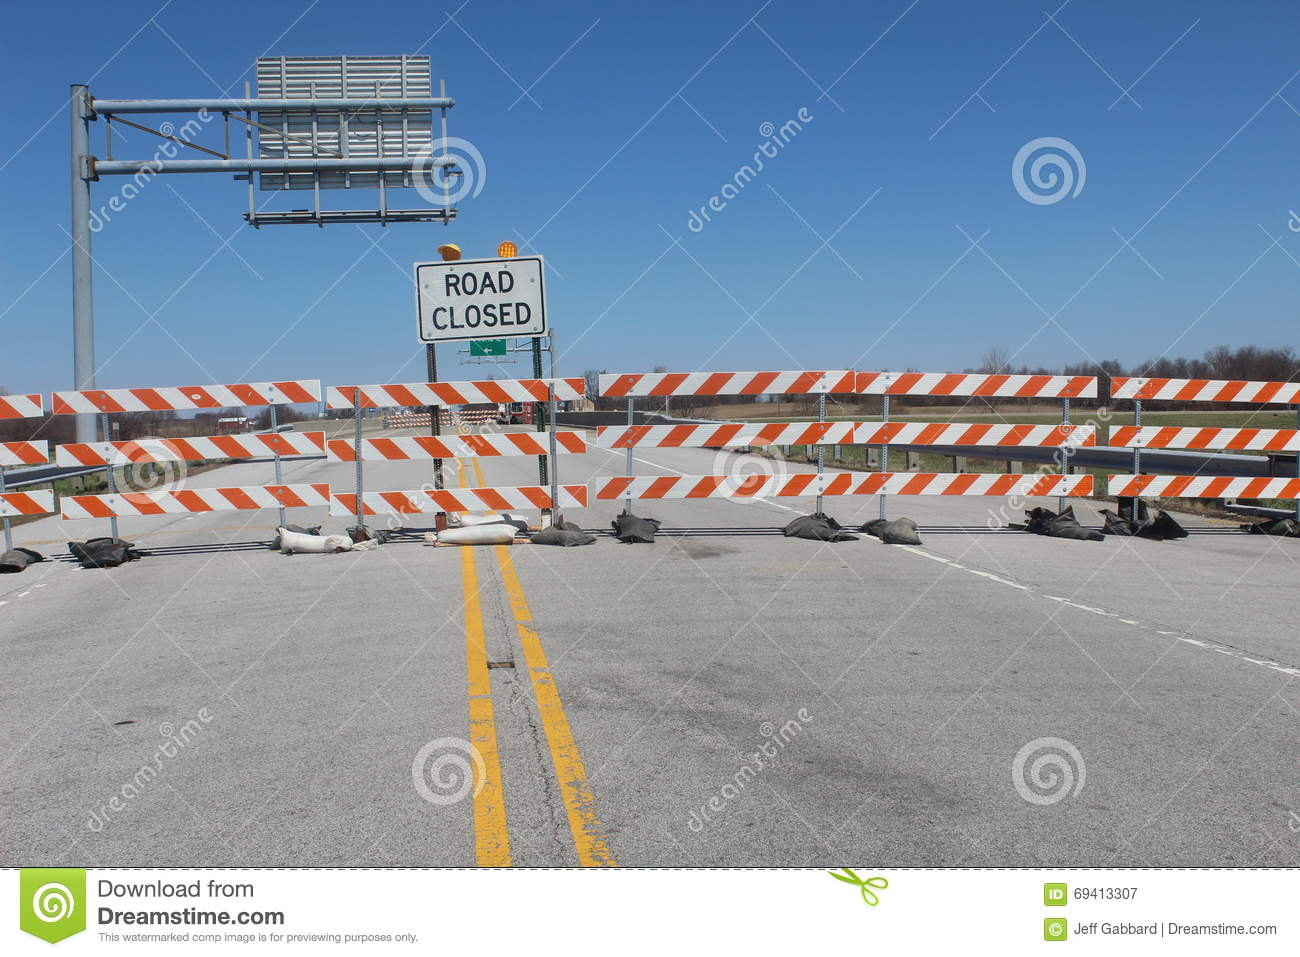 Signs for Road Closed over bridge